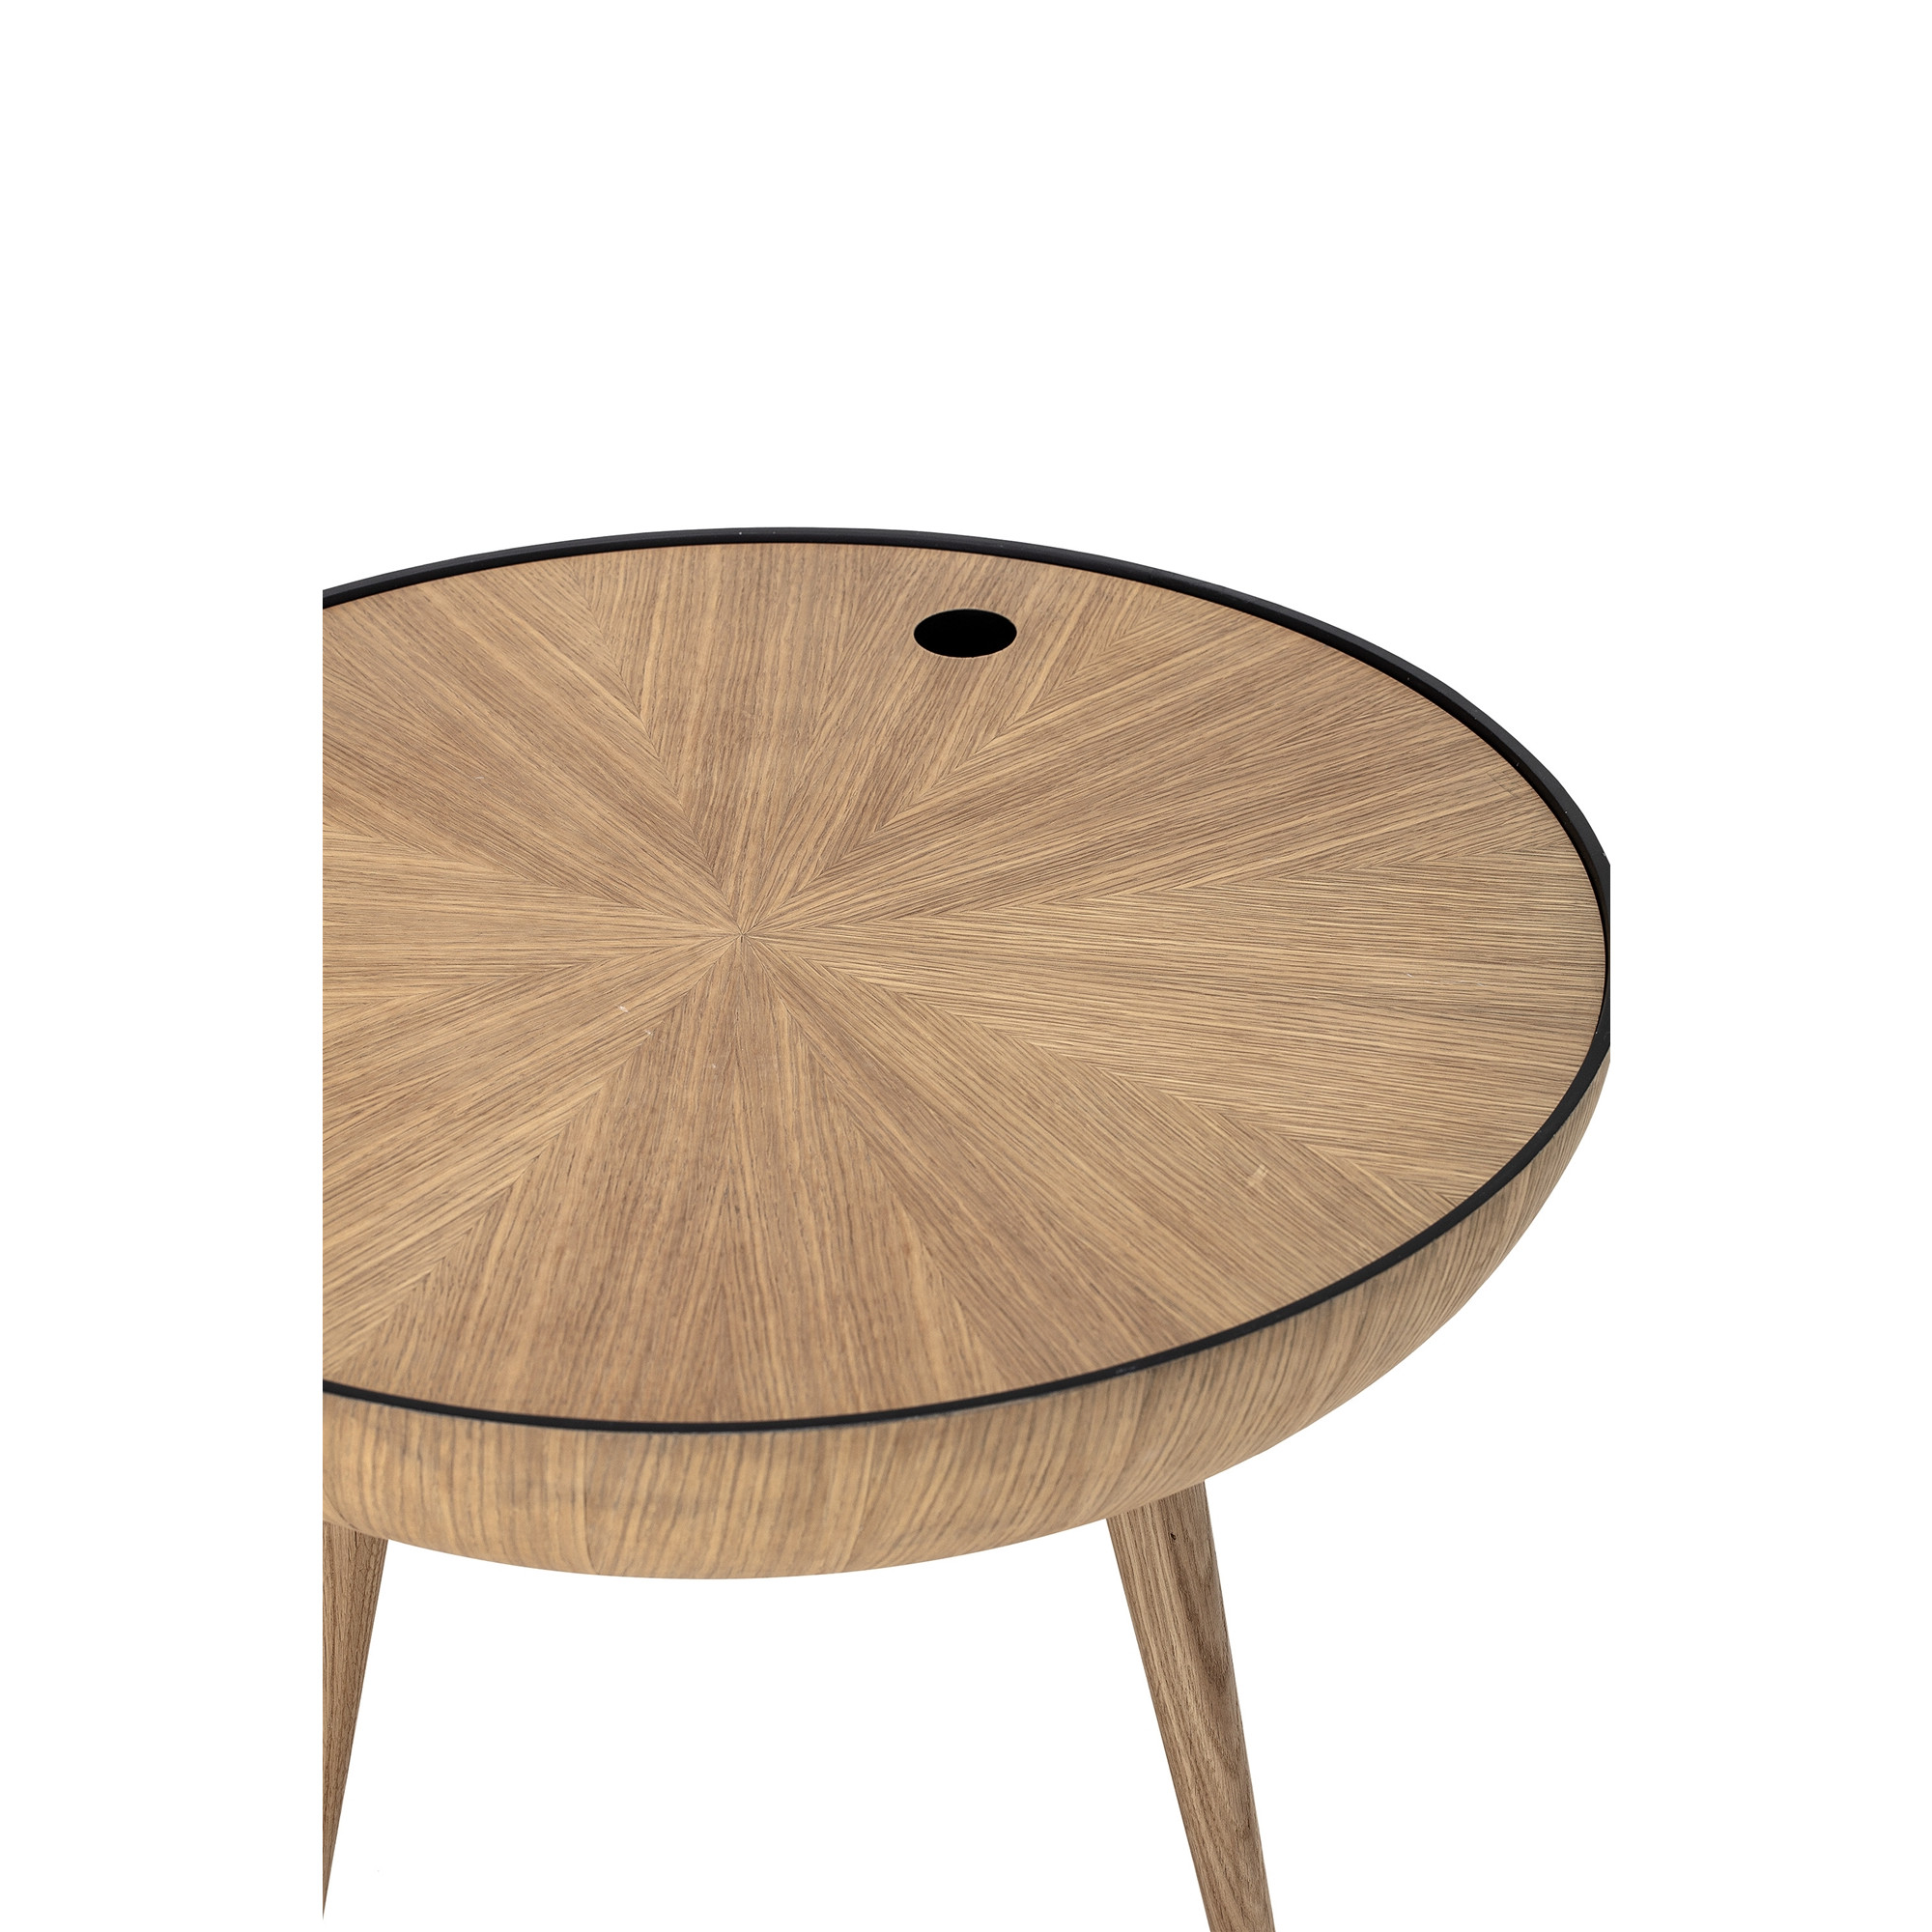 Coffee Table with Storage Space | Ronda